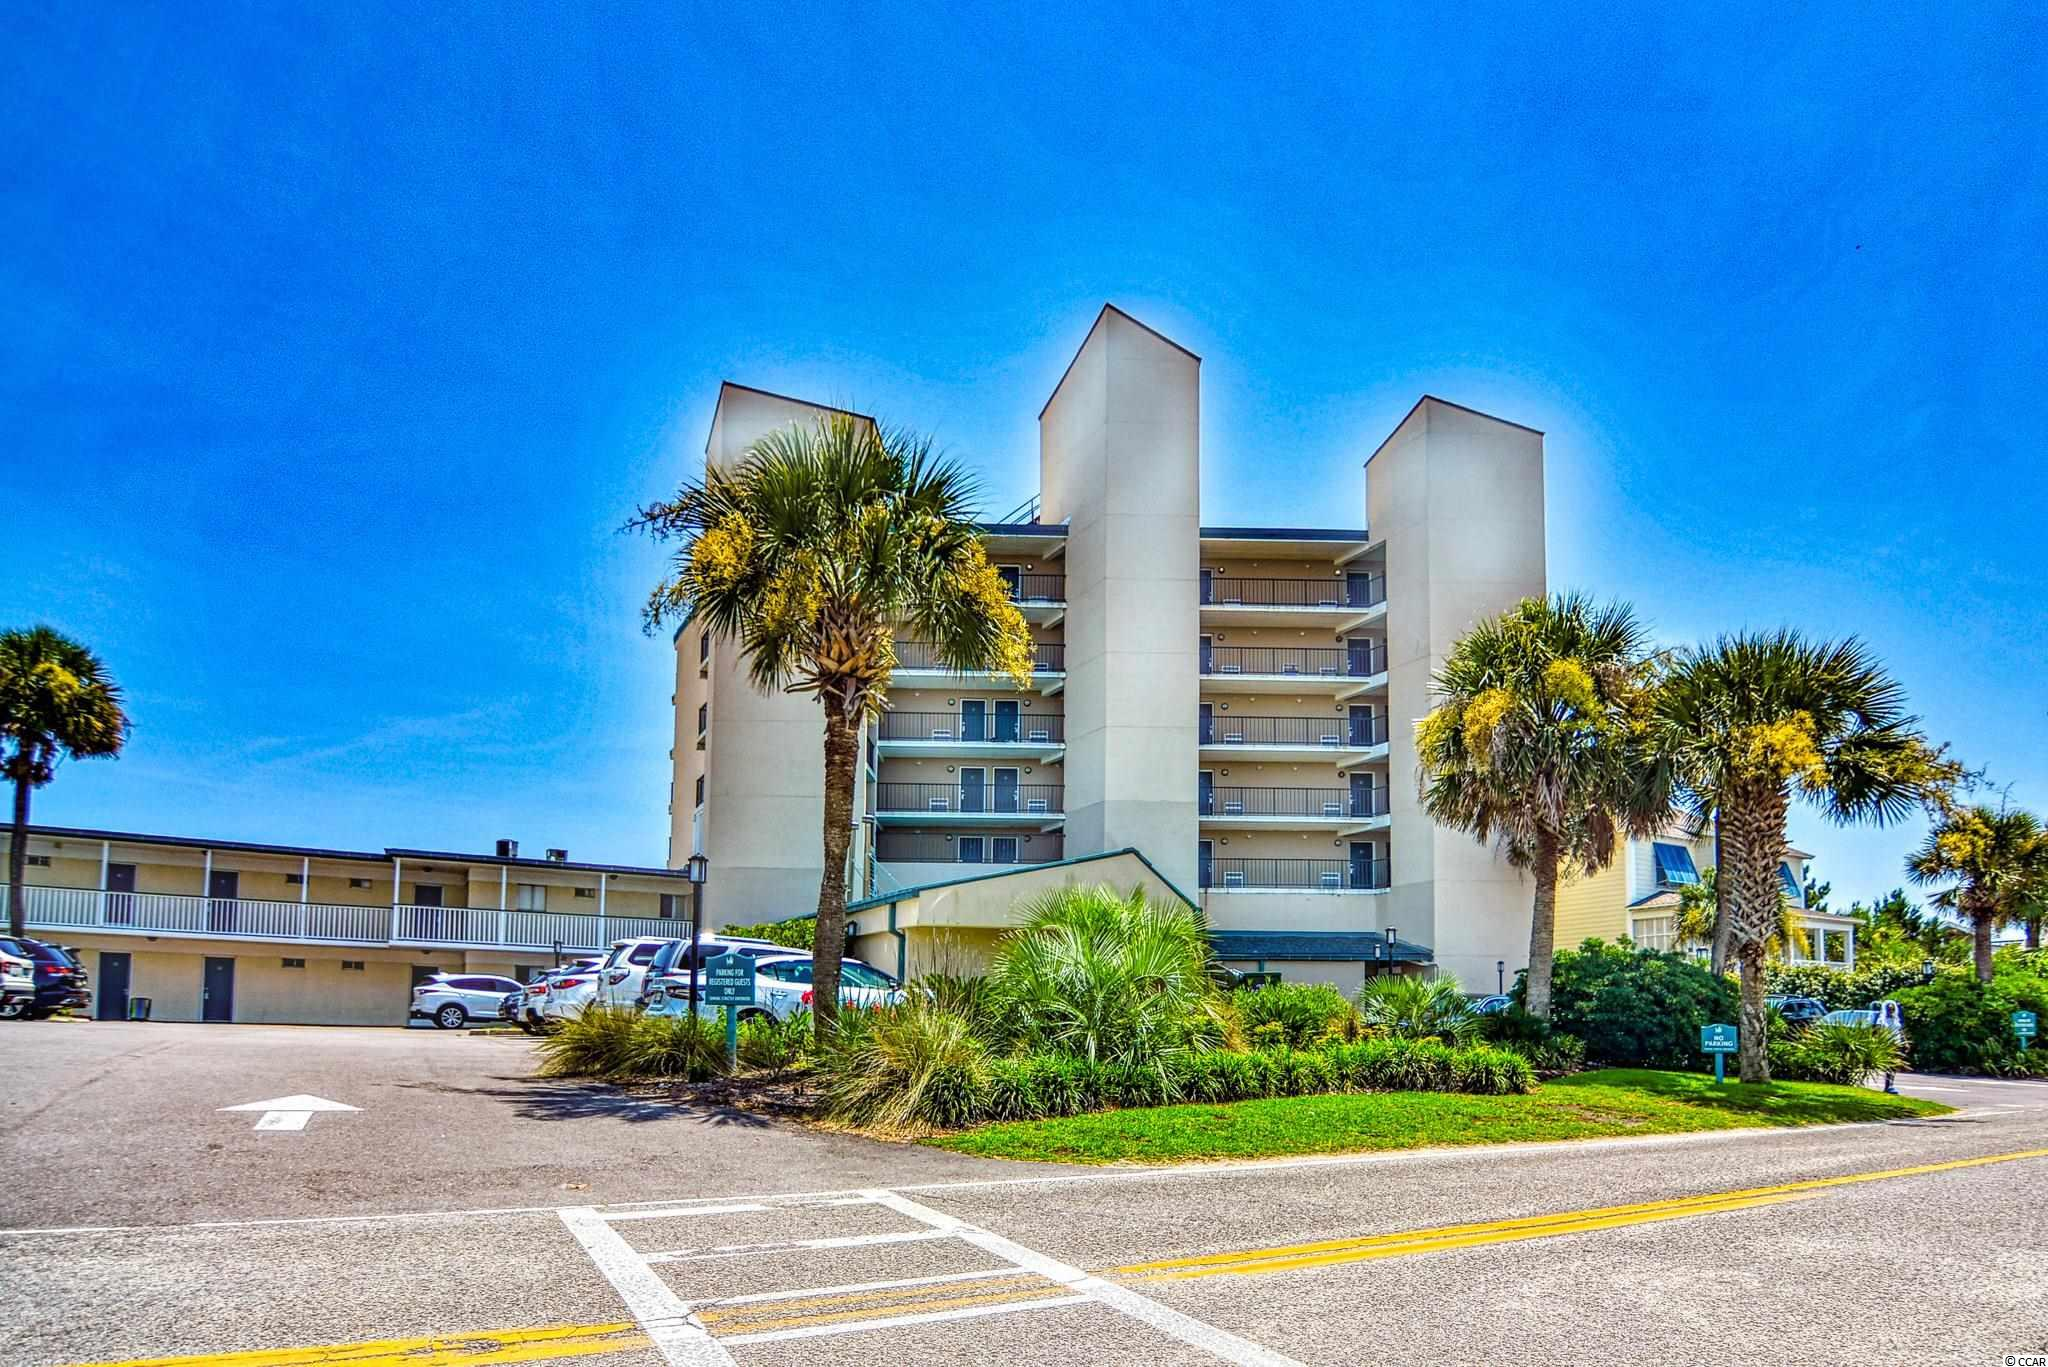 Don't miss out on this rare offering of one of the most highly sought after direct oceanfront suites at the award winning Litchfield Inn. This end unit offers privacy and boasts THE BEST and most iconic views of Litchfield Beach.  The owner spared no expense with this Lowcountry designer suite that brings in an incredible rental income because of it's ground location. If you're looking for a unit that is DIRECTLY on the shore, this is it. Step out onto your private back porch that is literally steps away from the sand. This particular suite can also be used as a private getaway/second home. Lounge by two oceanfront pools while enjoying the best food and drinks you'll find at Austin's Cabana Café. In the evening, head upstairs and enjoy the only fine dining restaurant on the South Strand that offers full ocean views. Litchfield Inn is just a short drive to everything the area has to offer including: Murrells Inlet Marshwalk, Brookgreen Gardens, Huntington State Park, Myrtle Beach International Airport, Broadway At The Beach, The Market Common, Coastal Grande Mall, 2-Tanger Outlets, Barefoot Resort and Coastal Carolina University (CCU), marinas, public docks, boat landings, restaurants, golf courses, shops, entertainment. Also, only 75 miles to beautiful Charleston, SC!